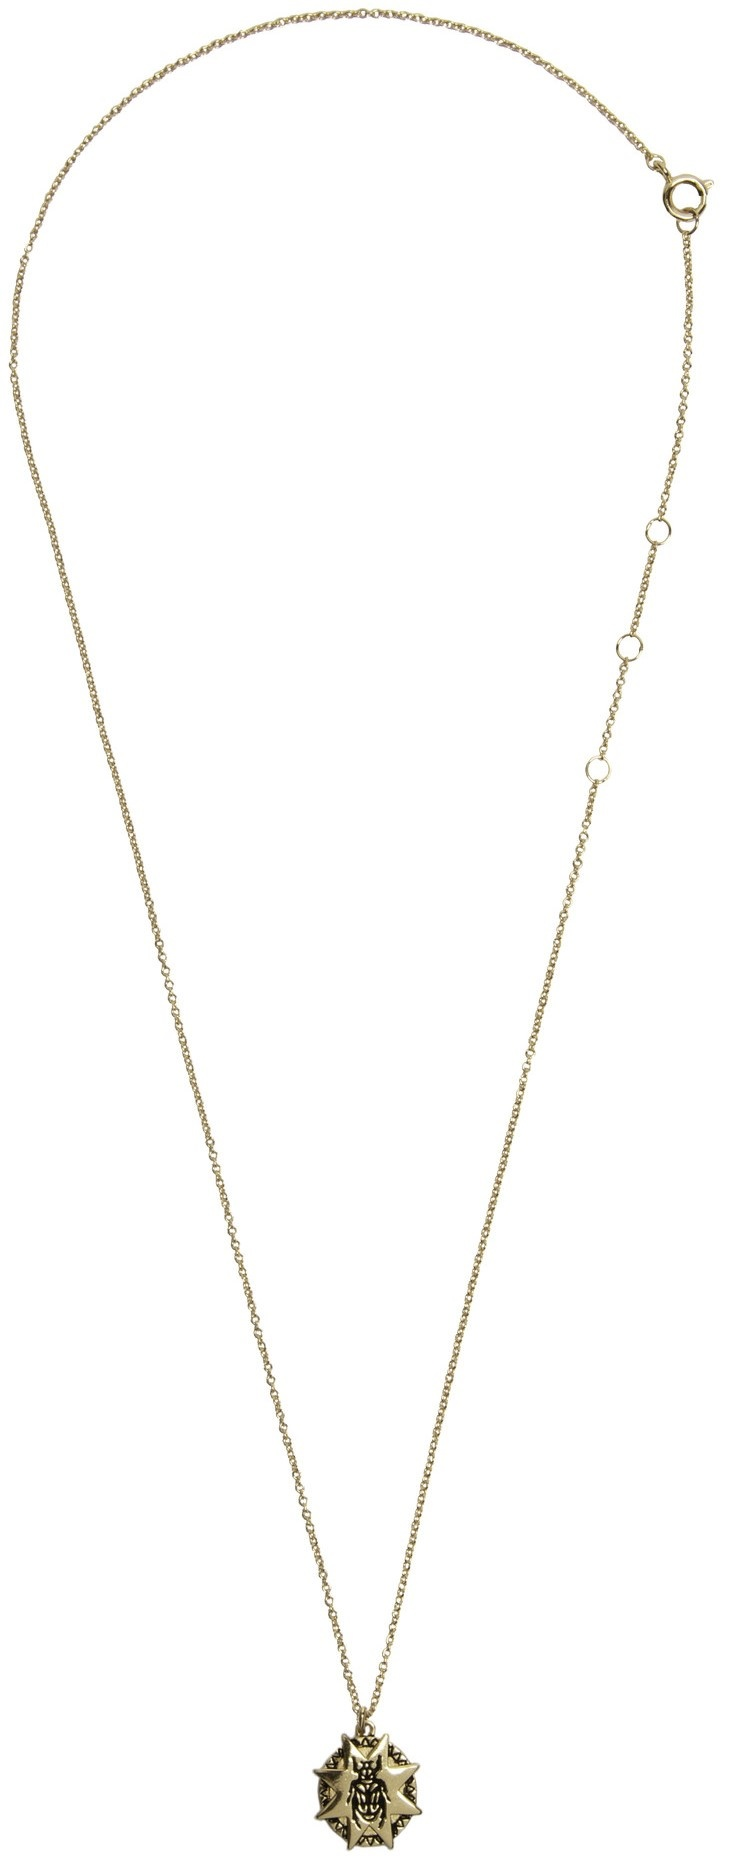 Ketting Beatle Starry Circle Gold-3